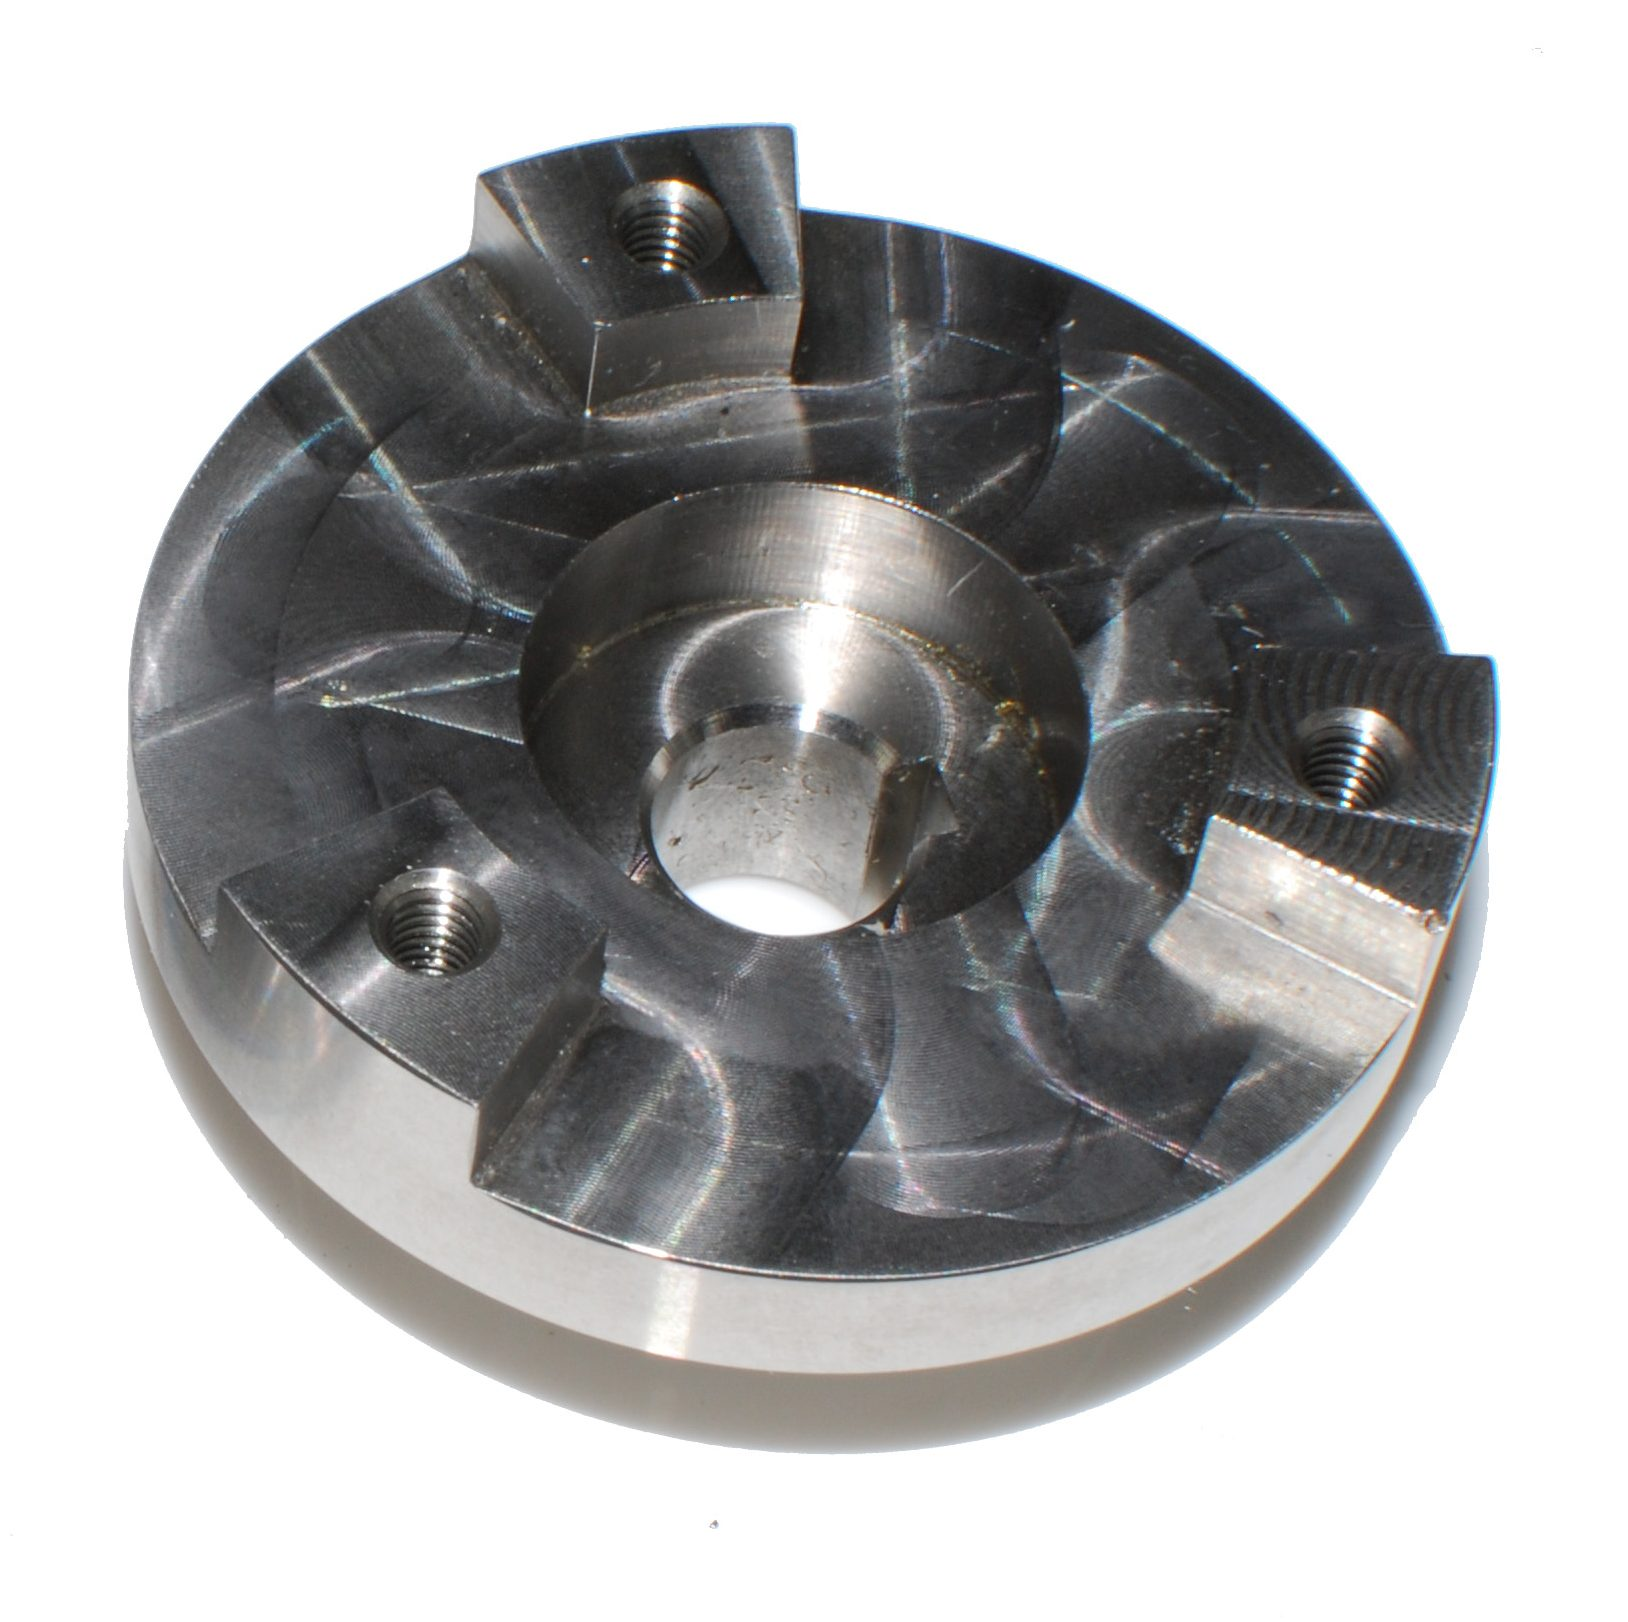 inner envirosight hub for TruGrit wheels buy affordable online parts